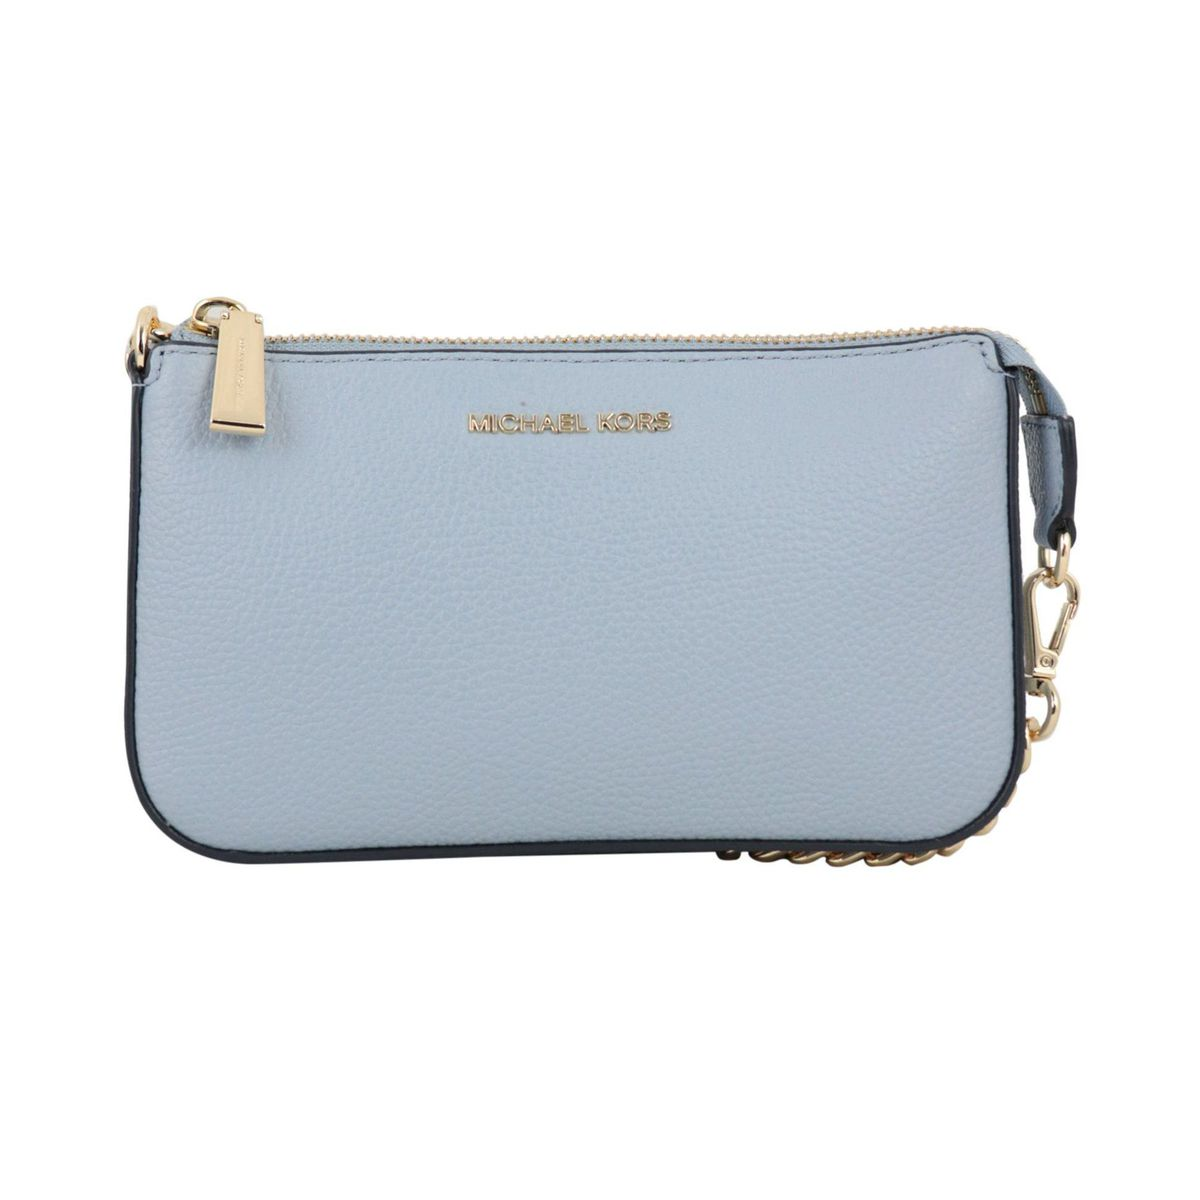 Mini textured leather bag with chain shoulder strap Light blue Michael Kors